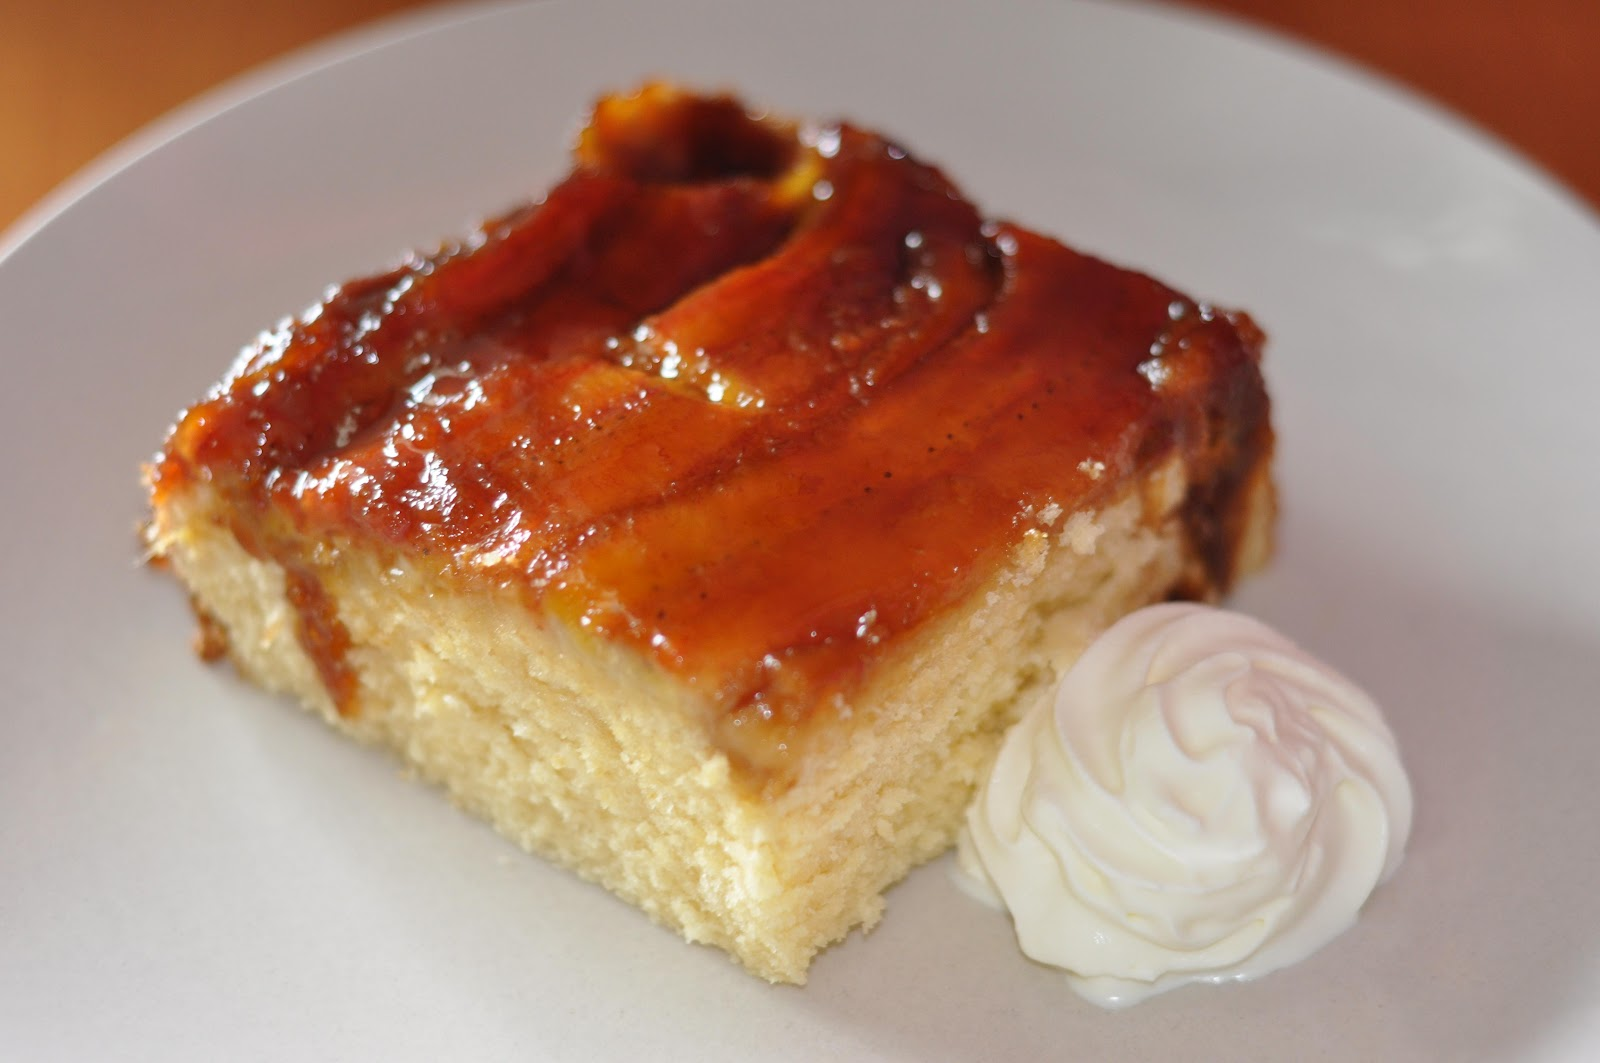 Jane's Kitchen: Banana Upside Down Cake